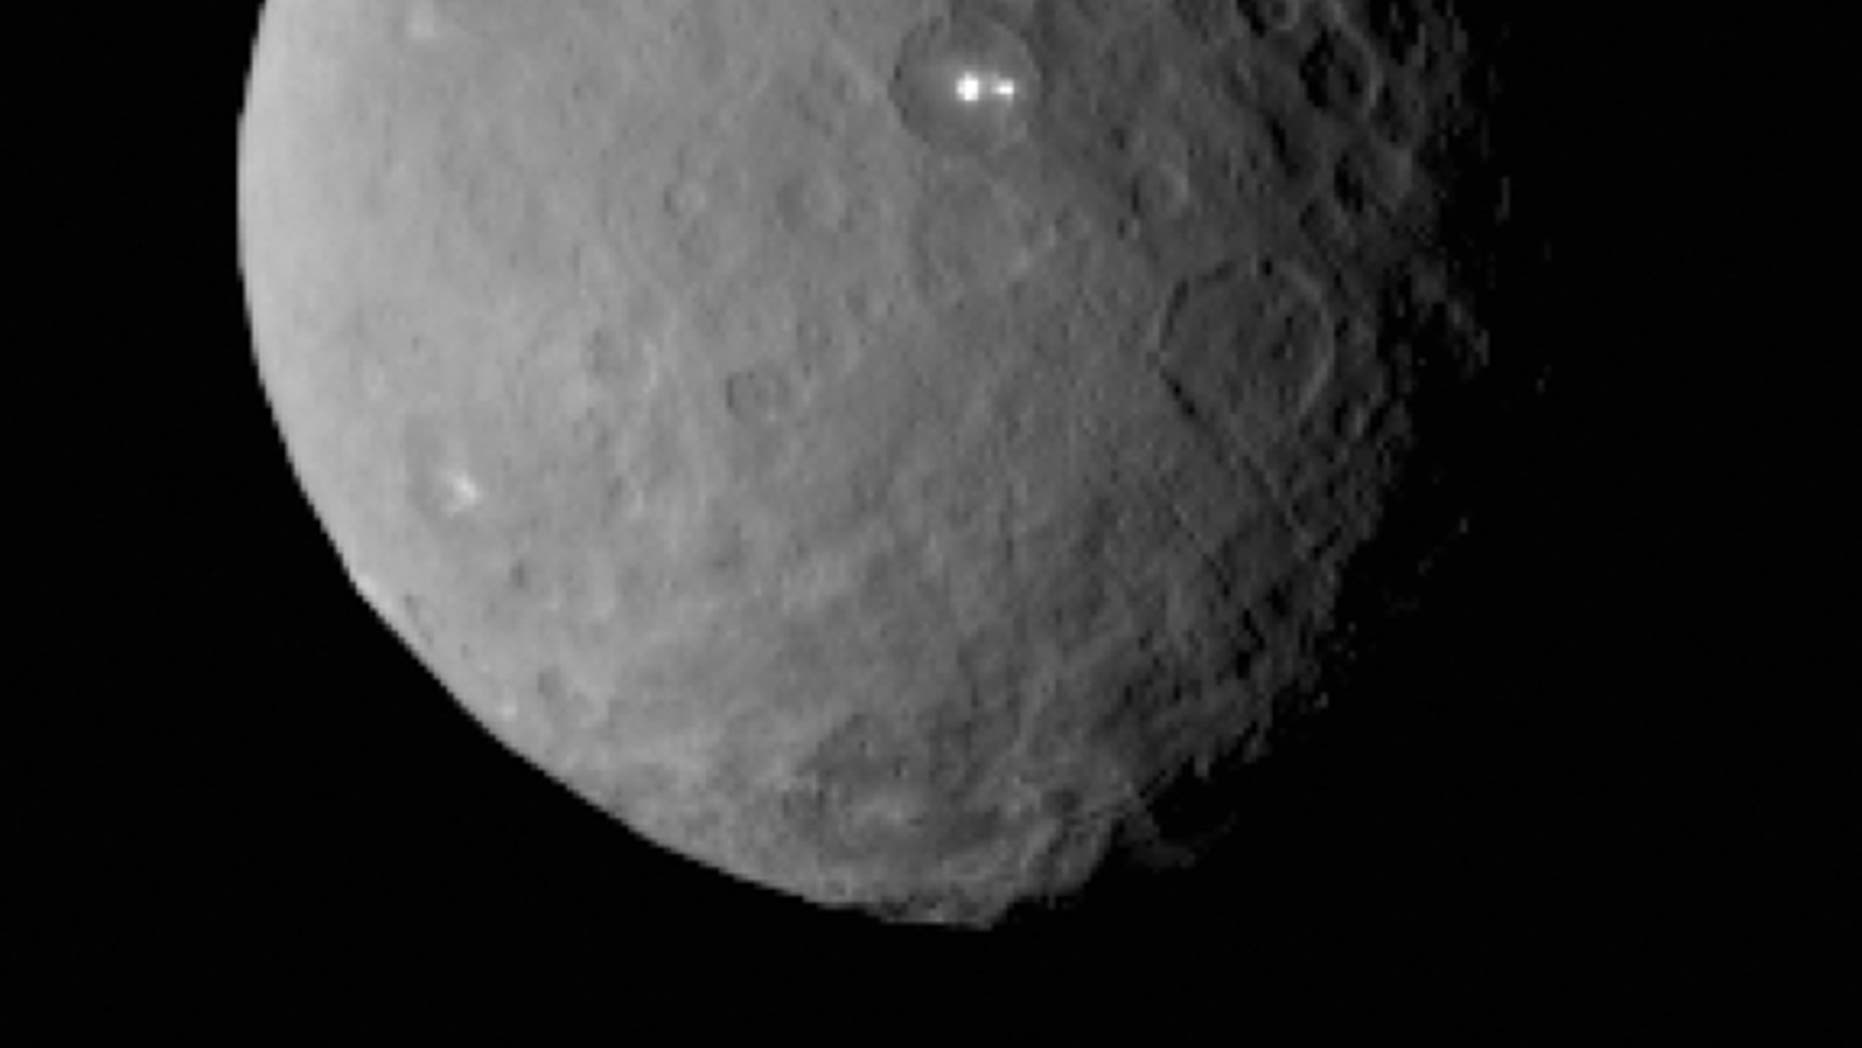 The brightest spot on Ceres possesses a dimmer companion, which apparently lies in the same basin.